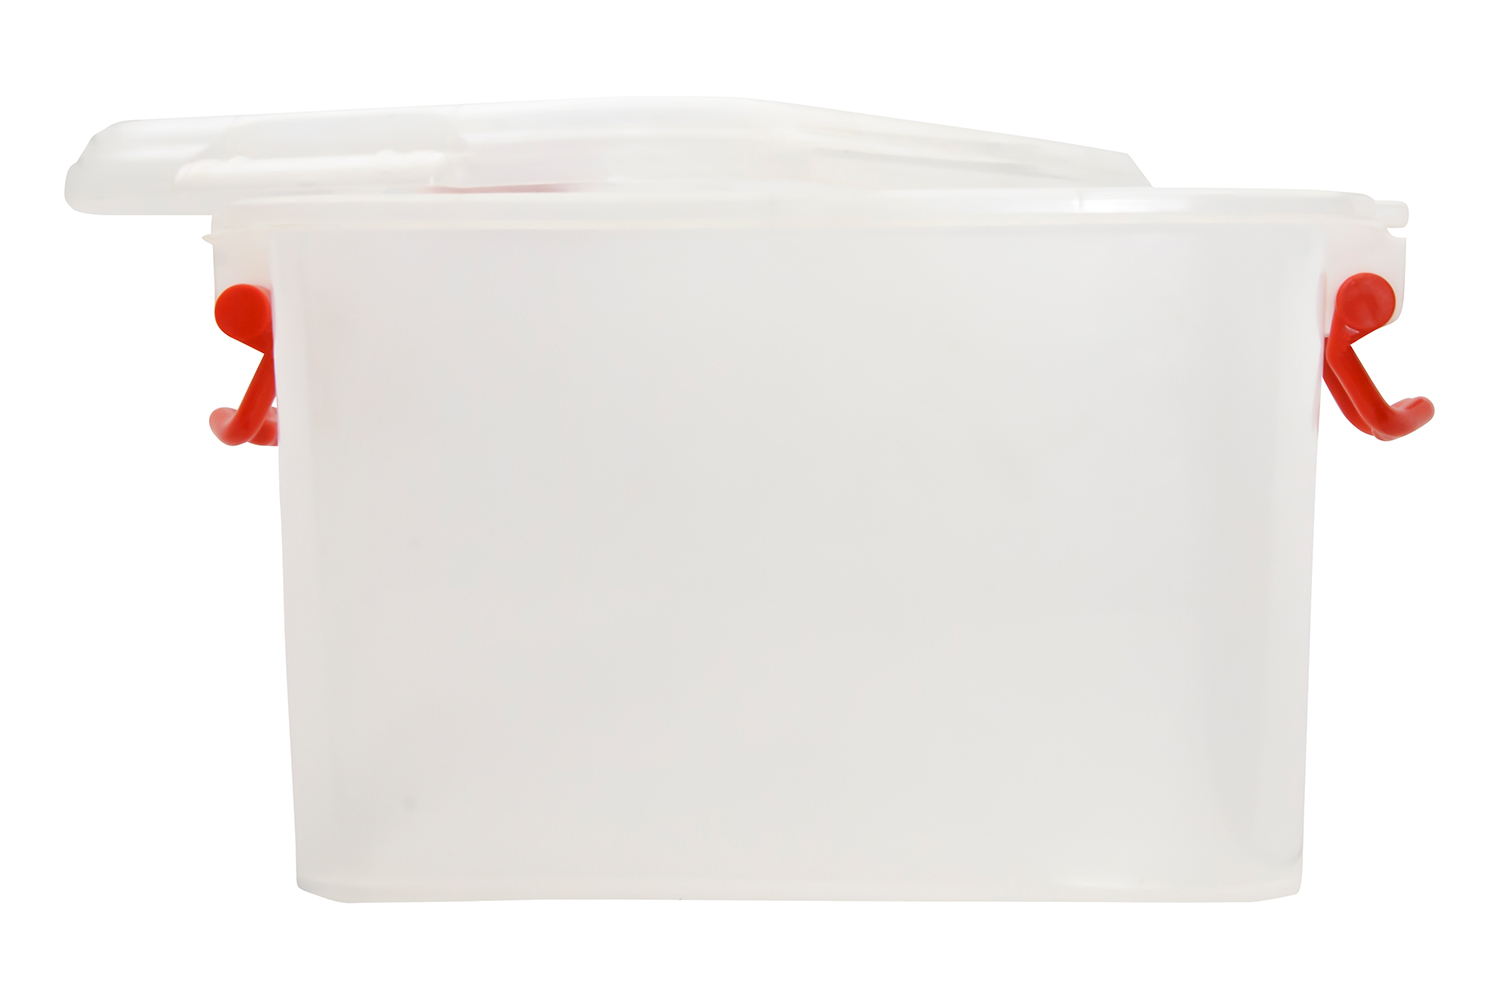 Plastic Package Container Bundle 50% SAVINGS example image 2